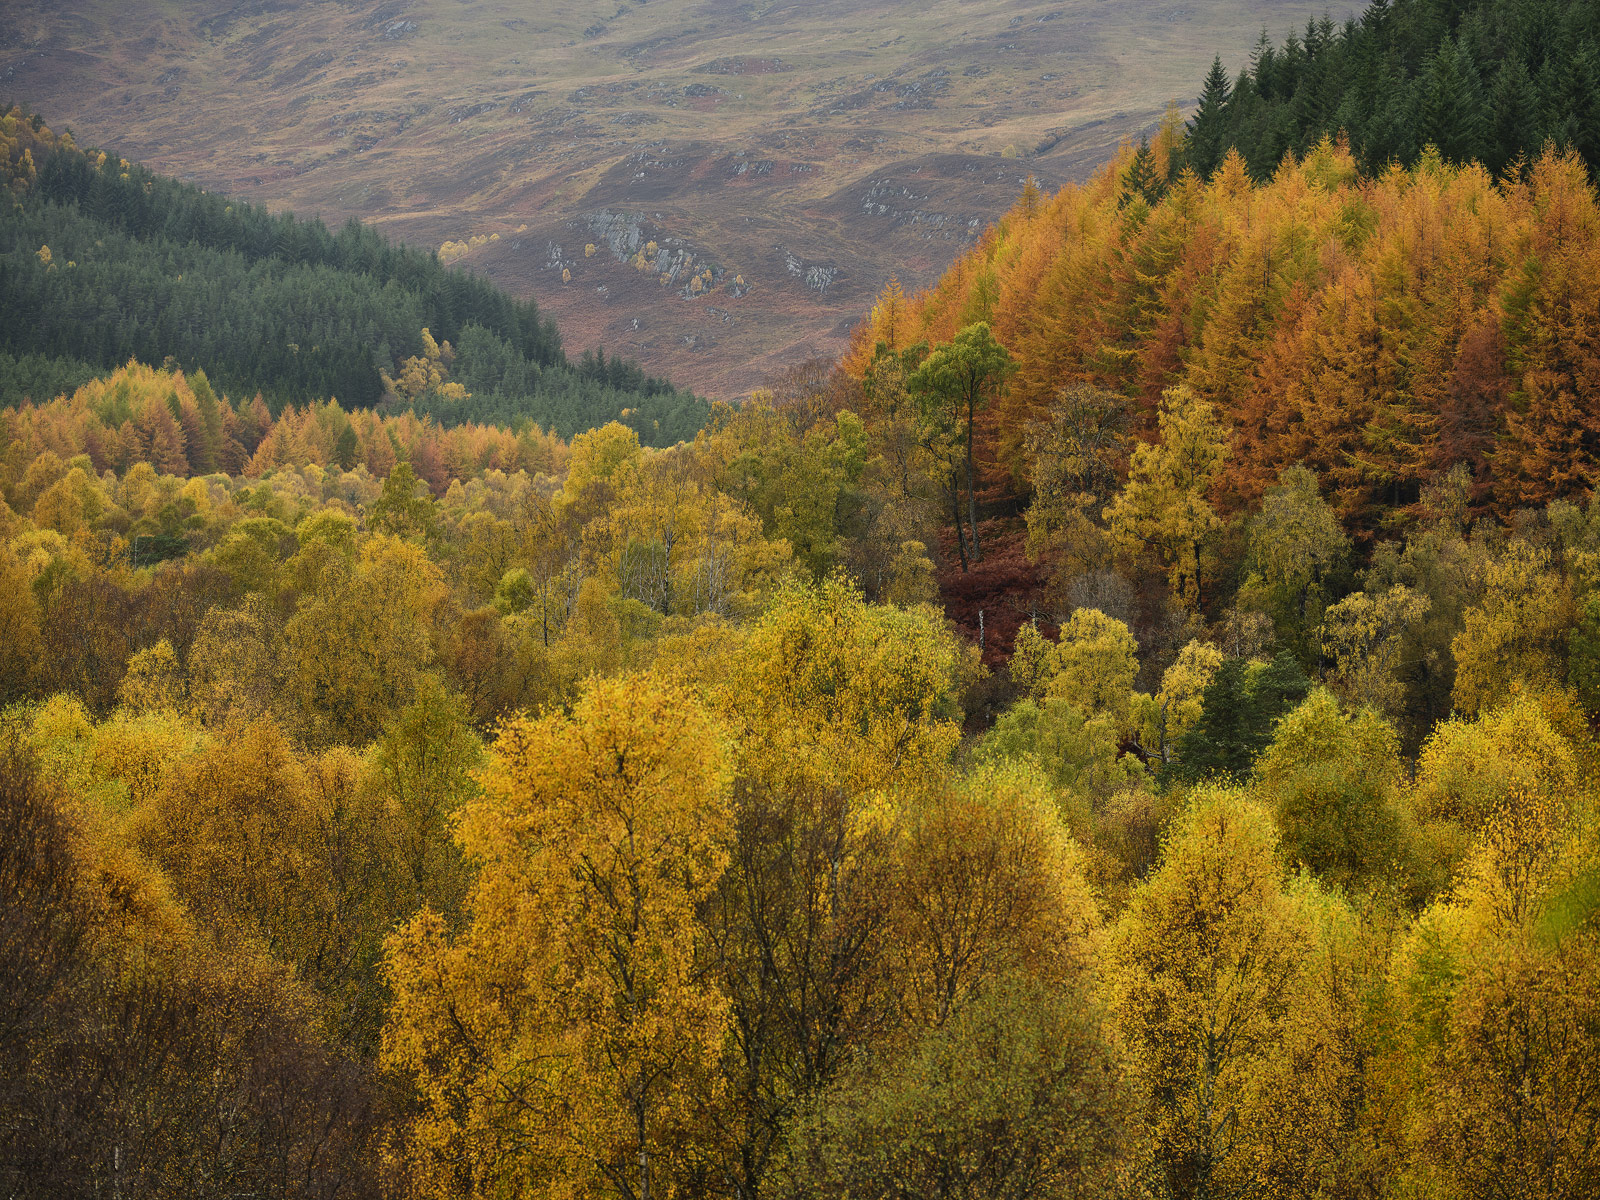 Autumn Canopy Cannich, Glen Cannich, Highlands, Scotland, birch, aspen, sycamore, gold, larch, spikes, autumn, colour, photo